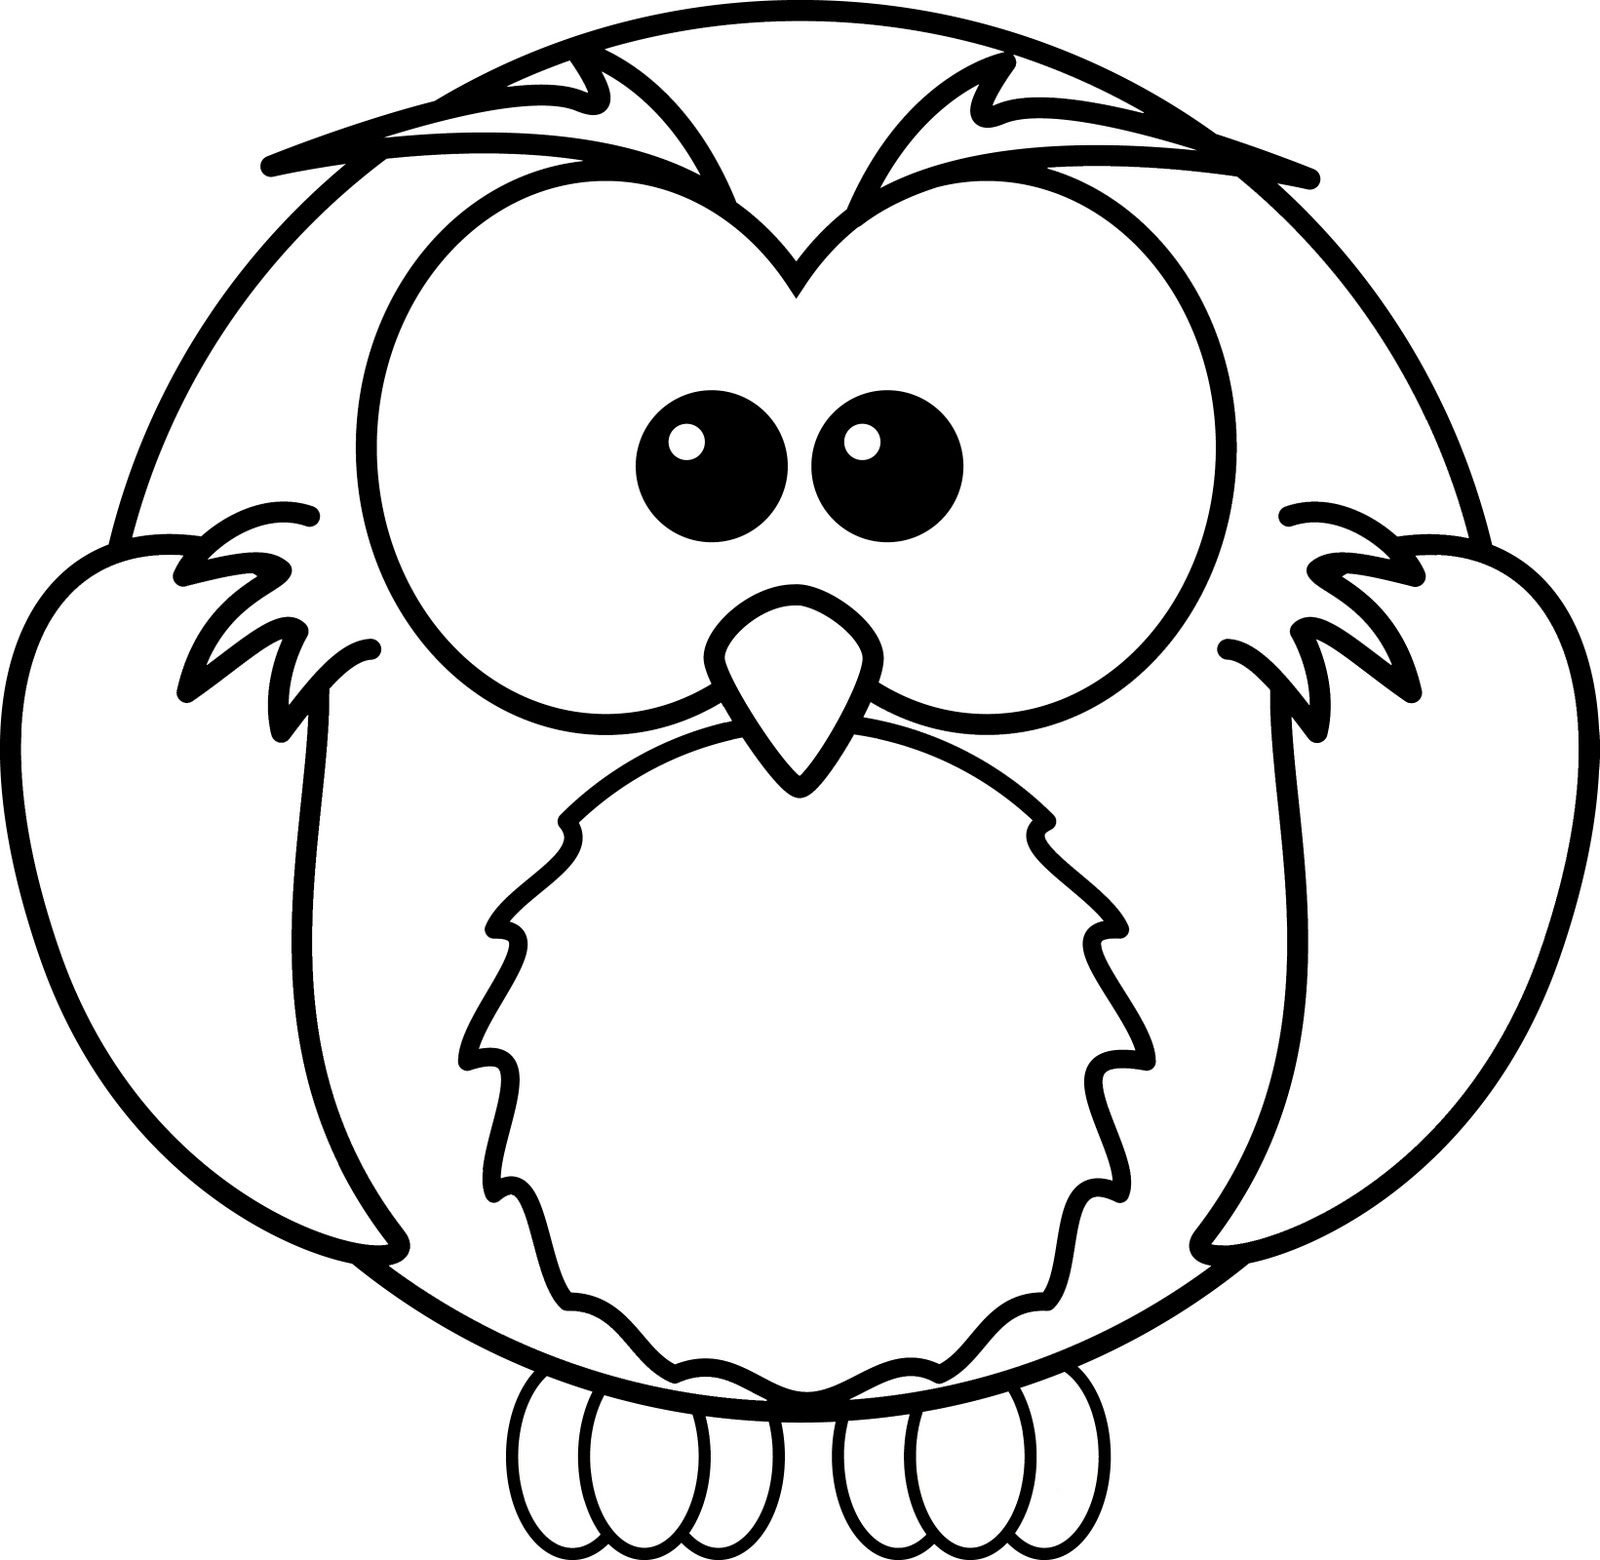 owl coloring download burrowing owl coloring for free designlooter owl coloring